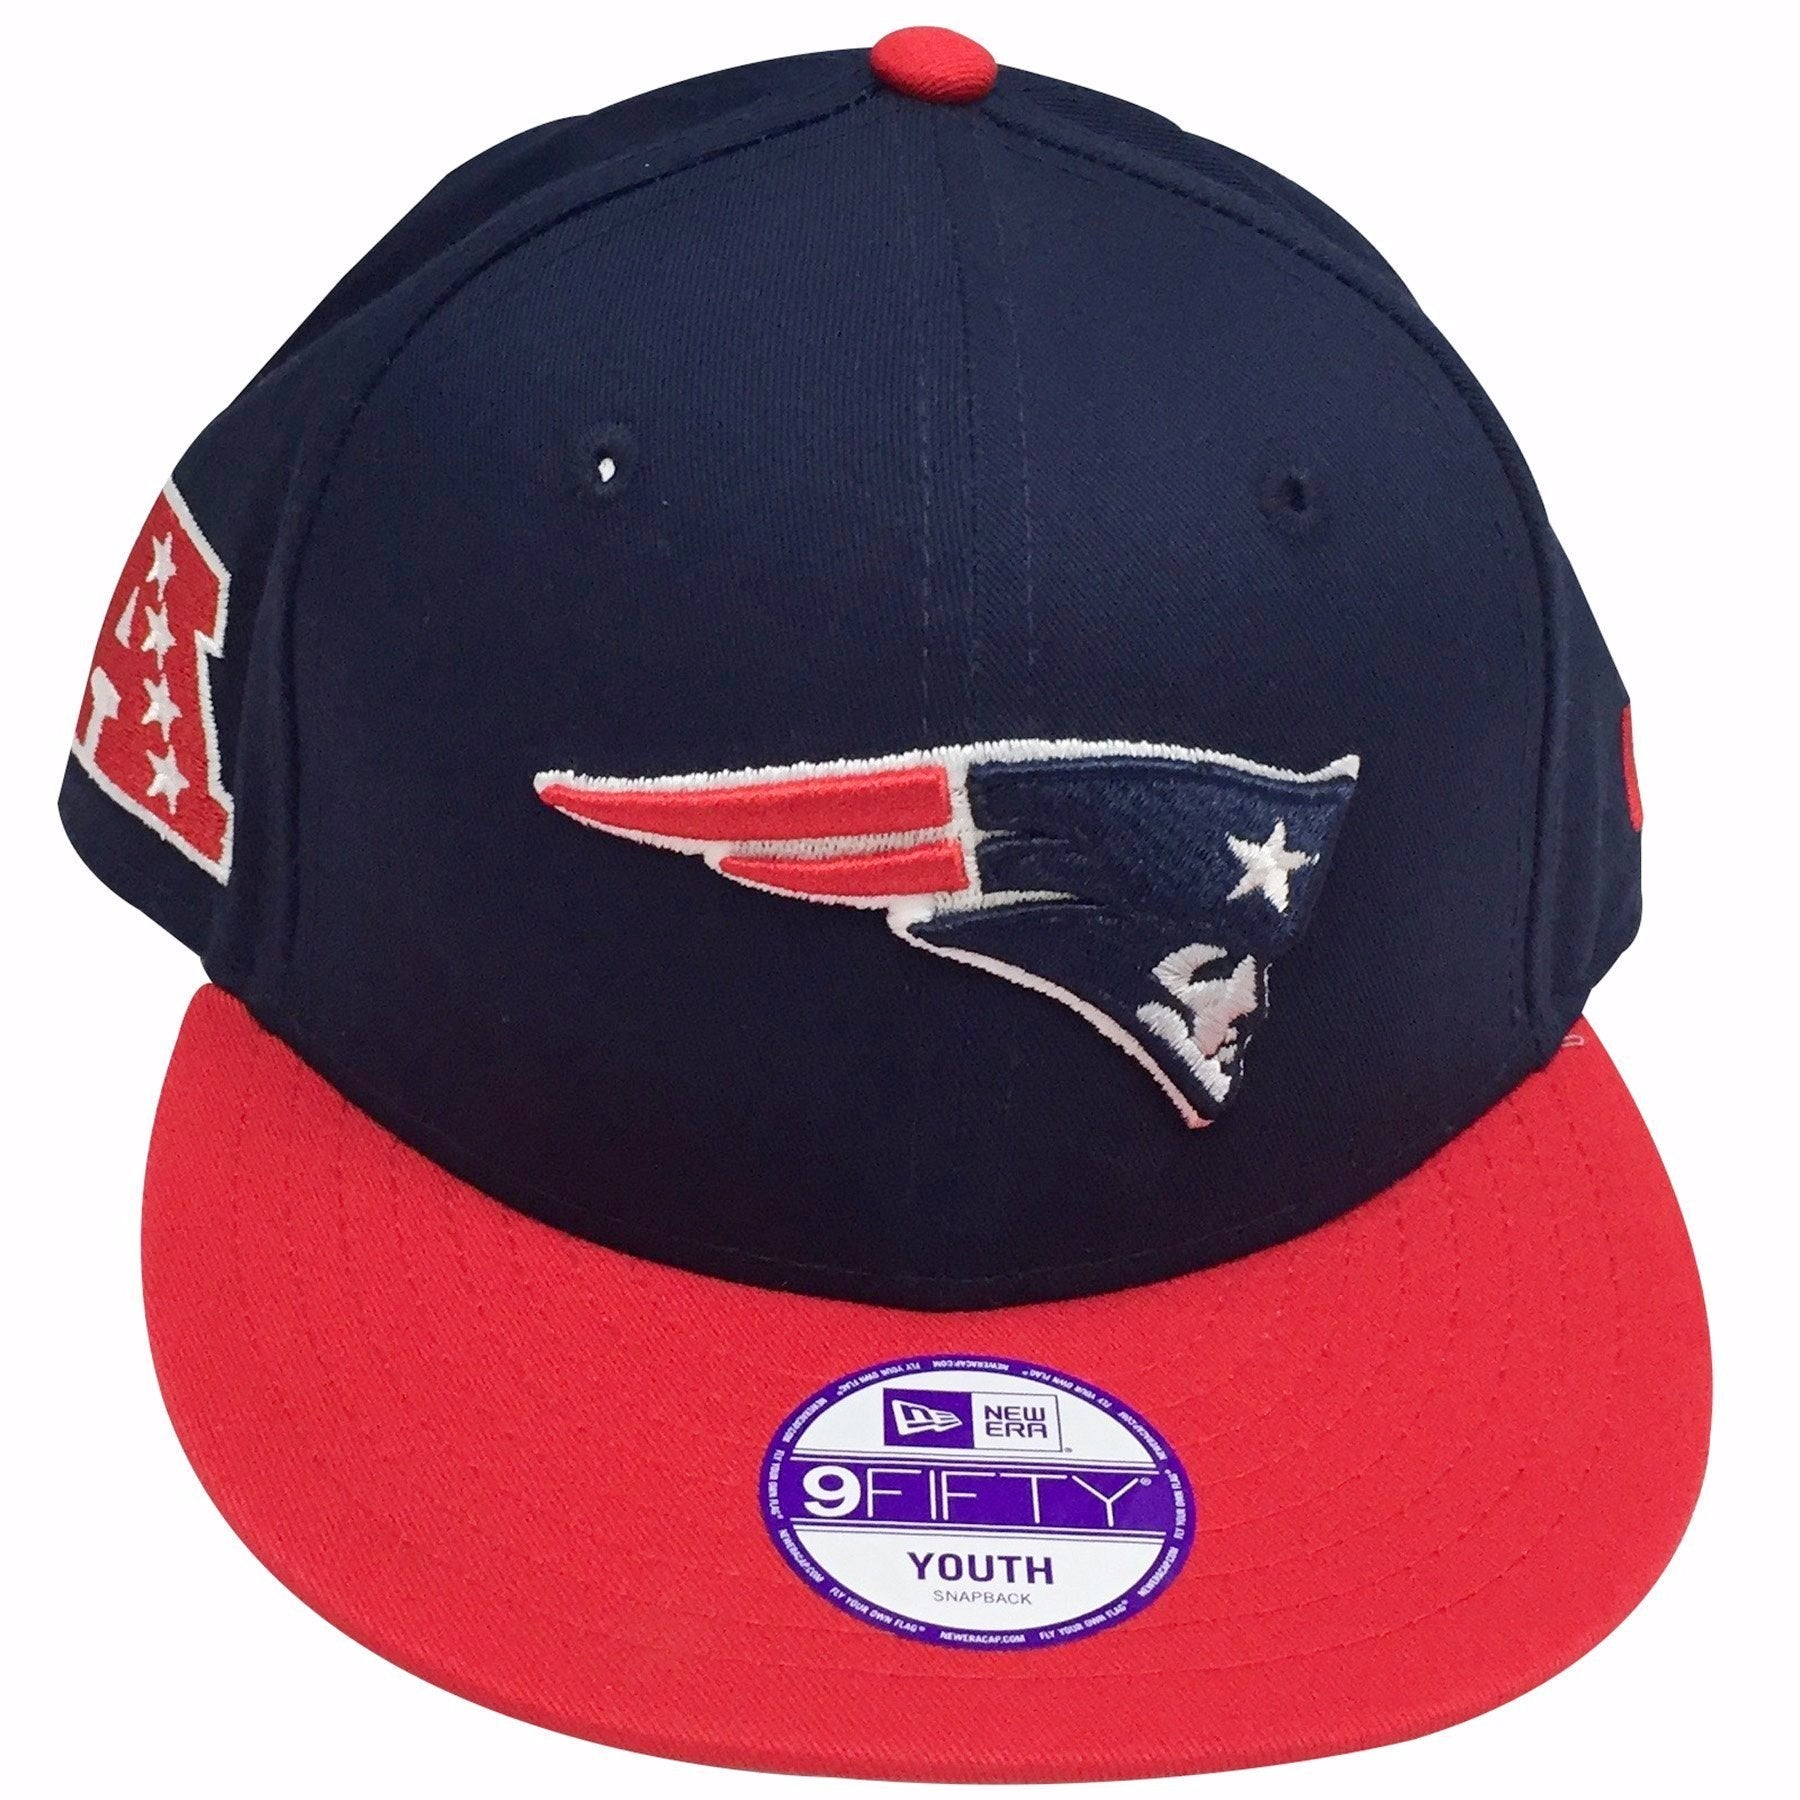 the new england patriots kid s sized afc champions snapback hat has a navy  blue crown be2ca5298